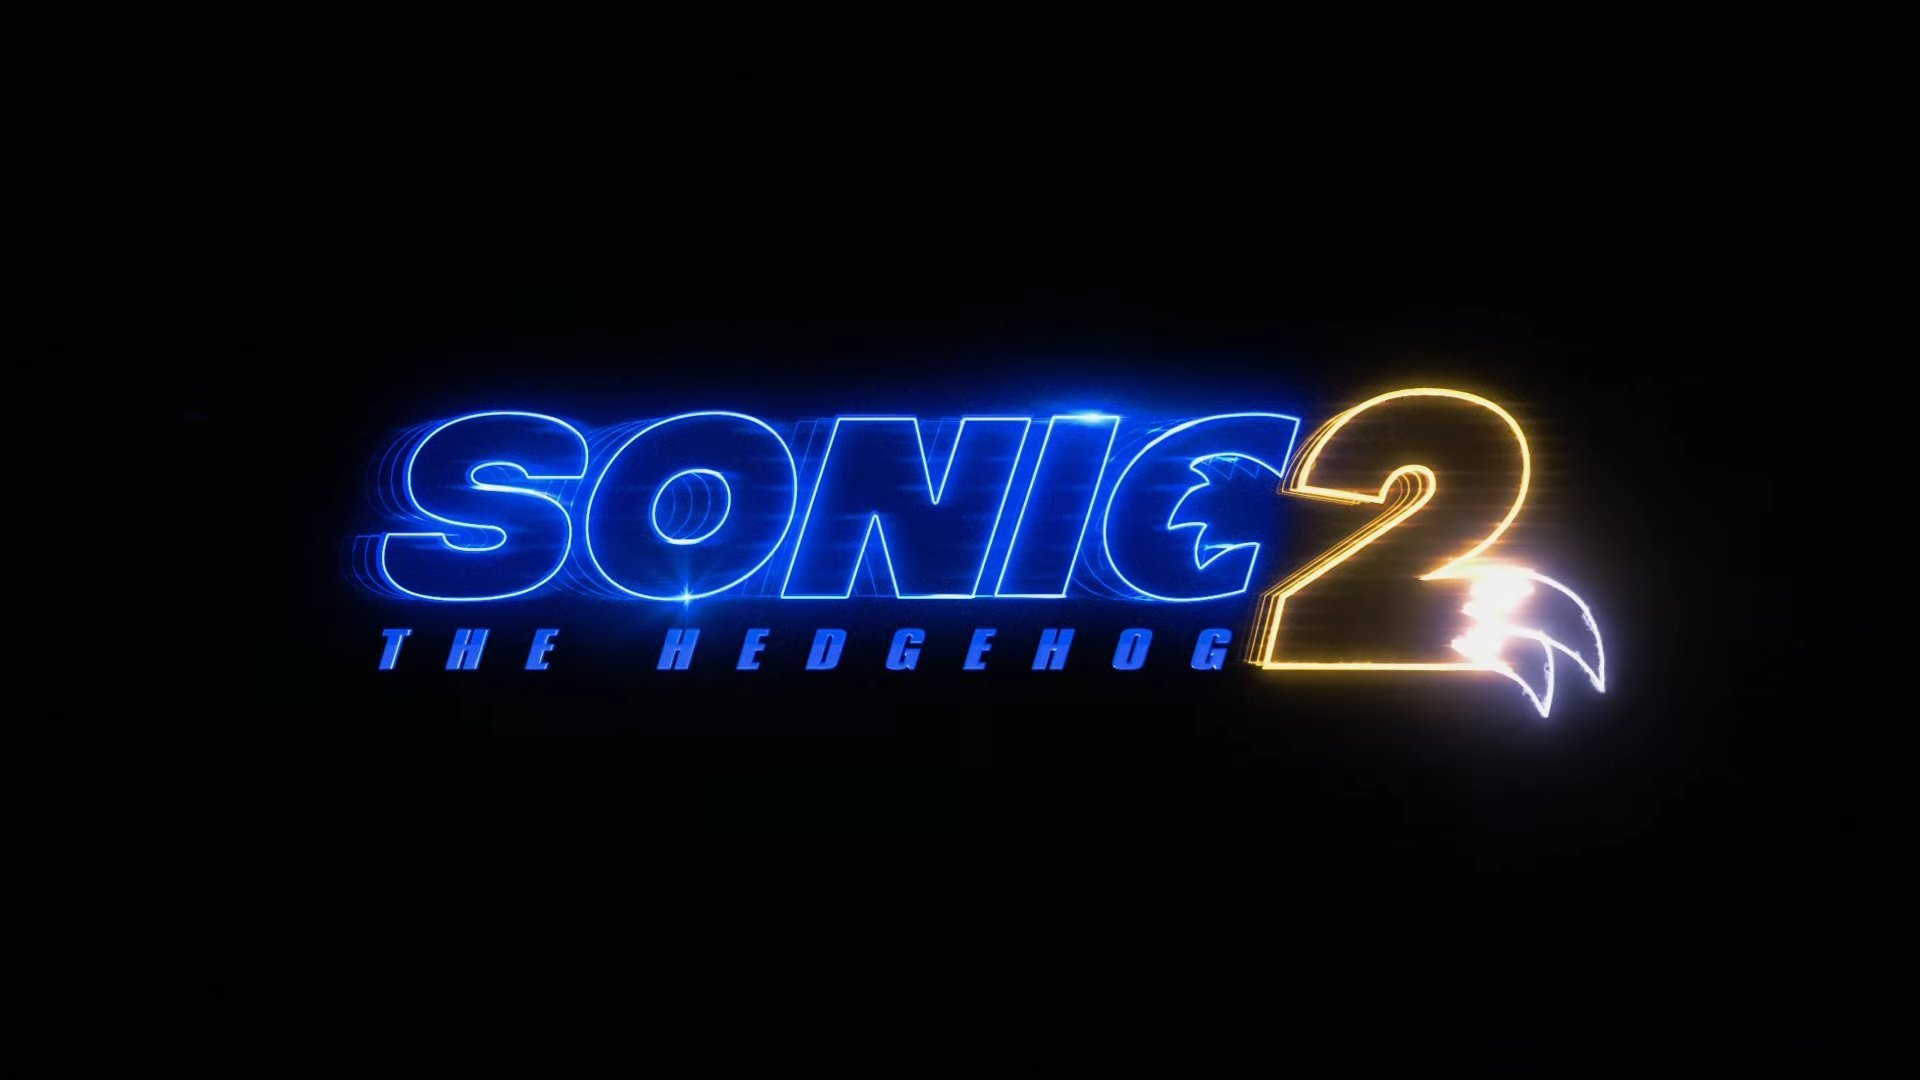 Sonic the Hedgehog 2: Story of the second movie leaked